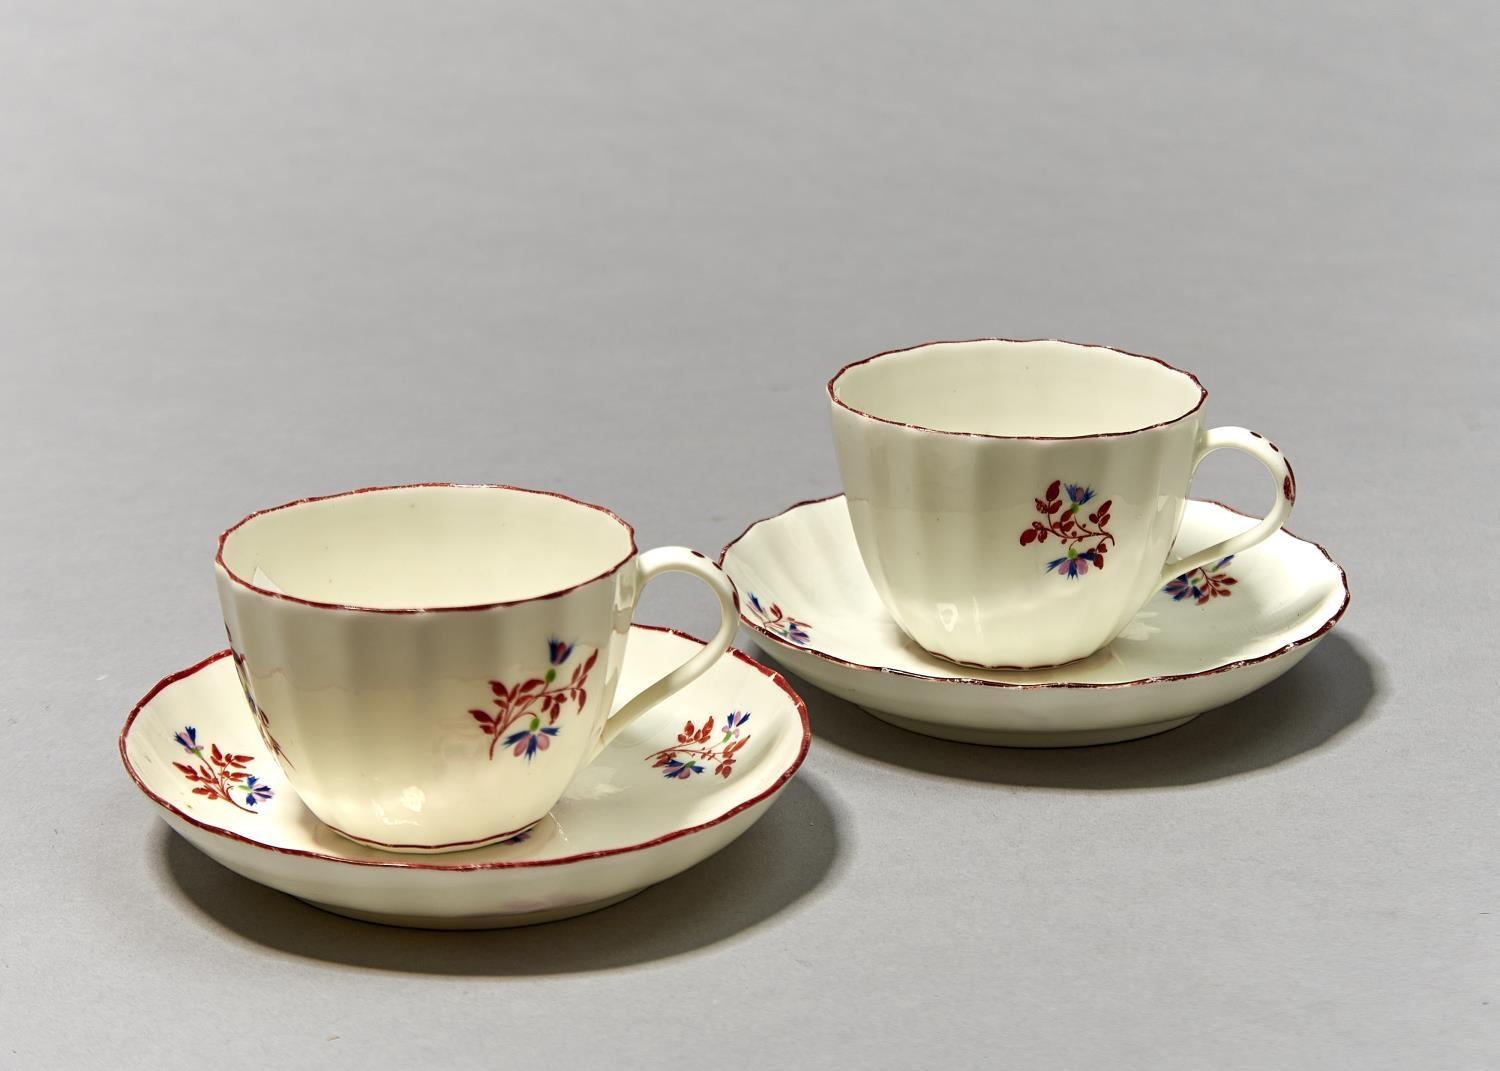 TWO PINXTON FLUTED TEACUPS AND SAUCERS, PATTERN 1 (RED SPRIG), C1800, SAUCER 14CM DIAM Localised - Image 2 of 3